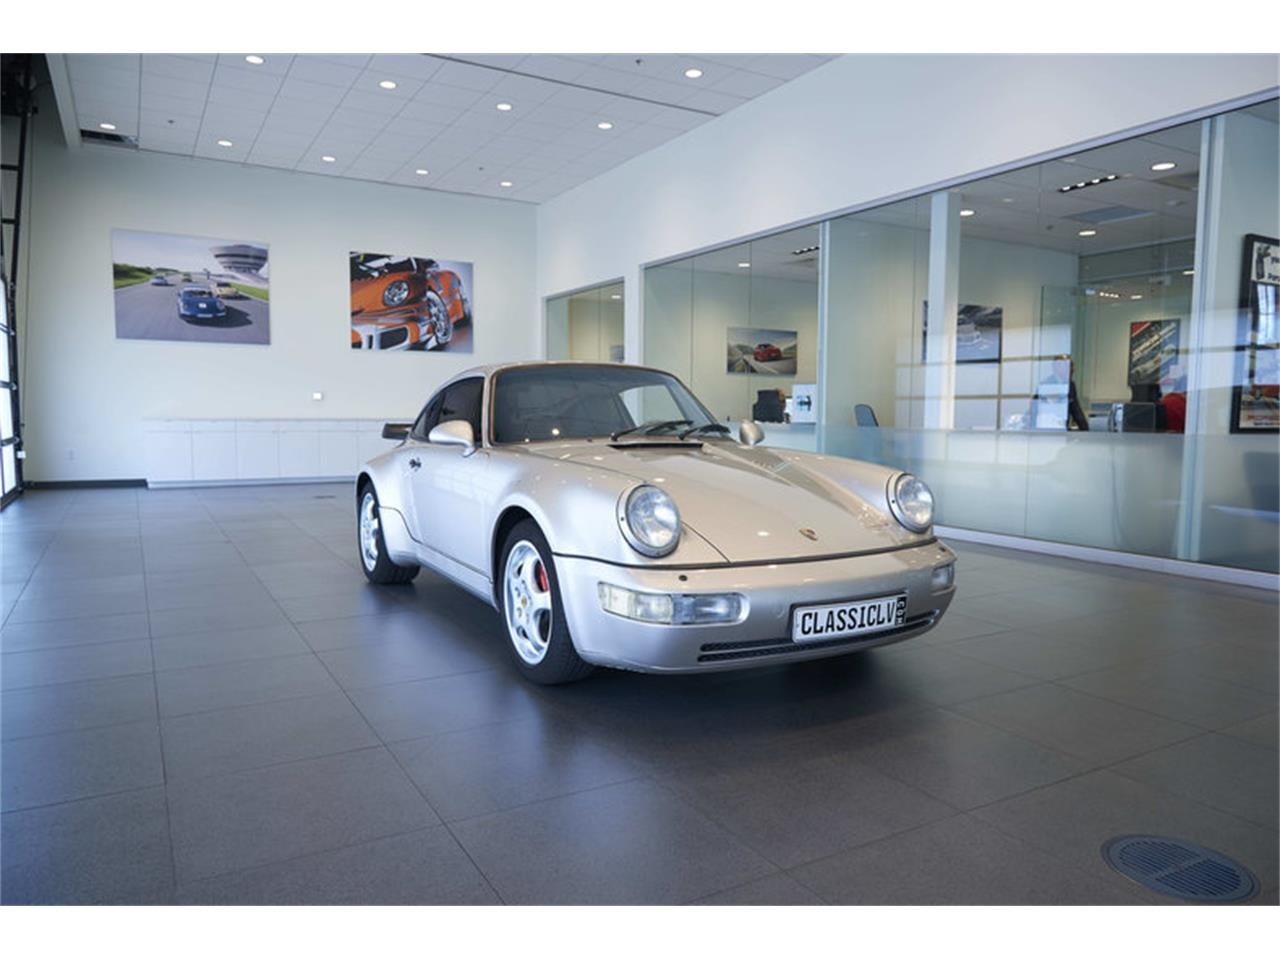 Large Picture of 1991 Porsche 911 Turbo - $149,911.00 Offered by Gaudin Porsche of Las Vegas - LIVG